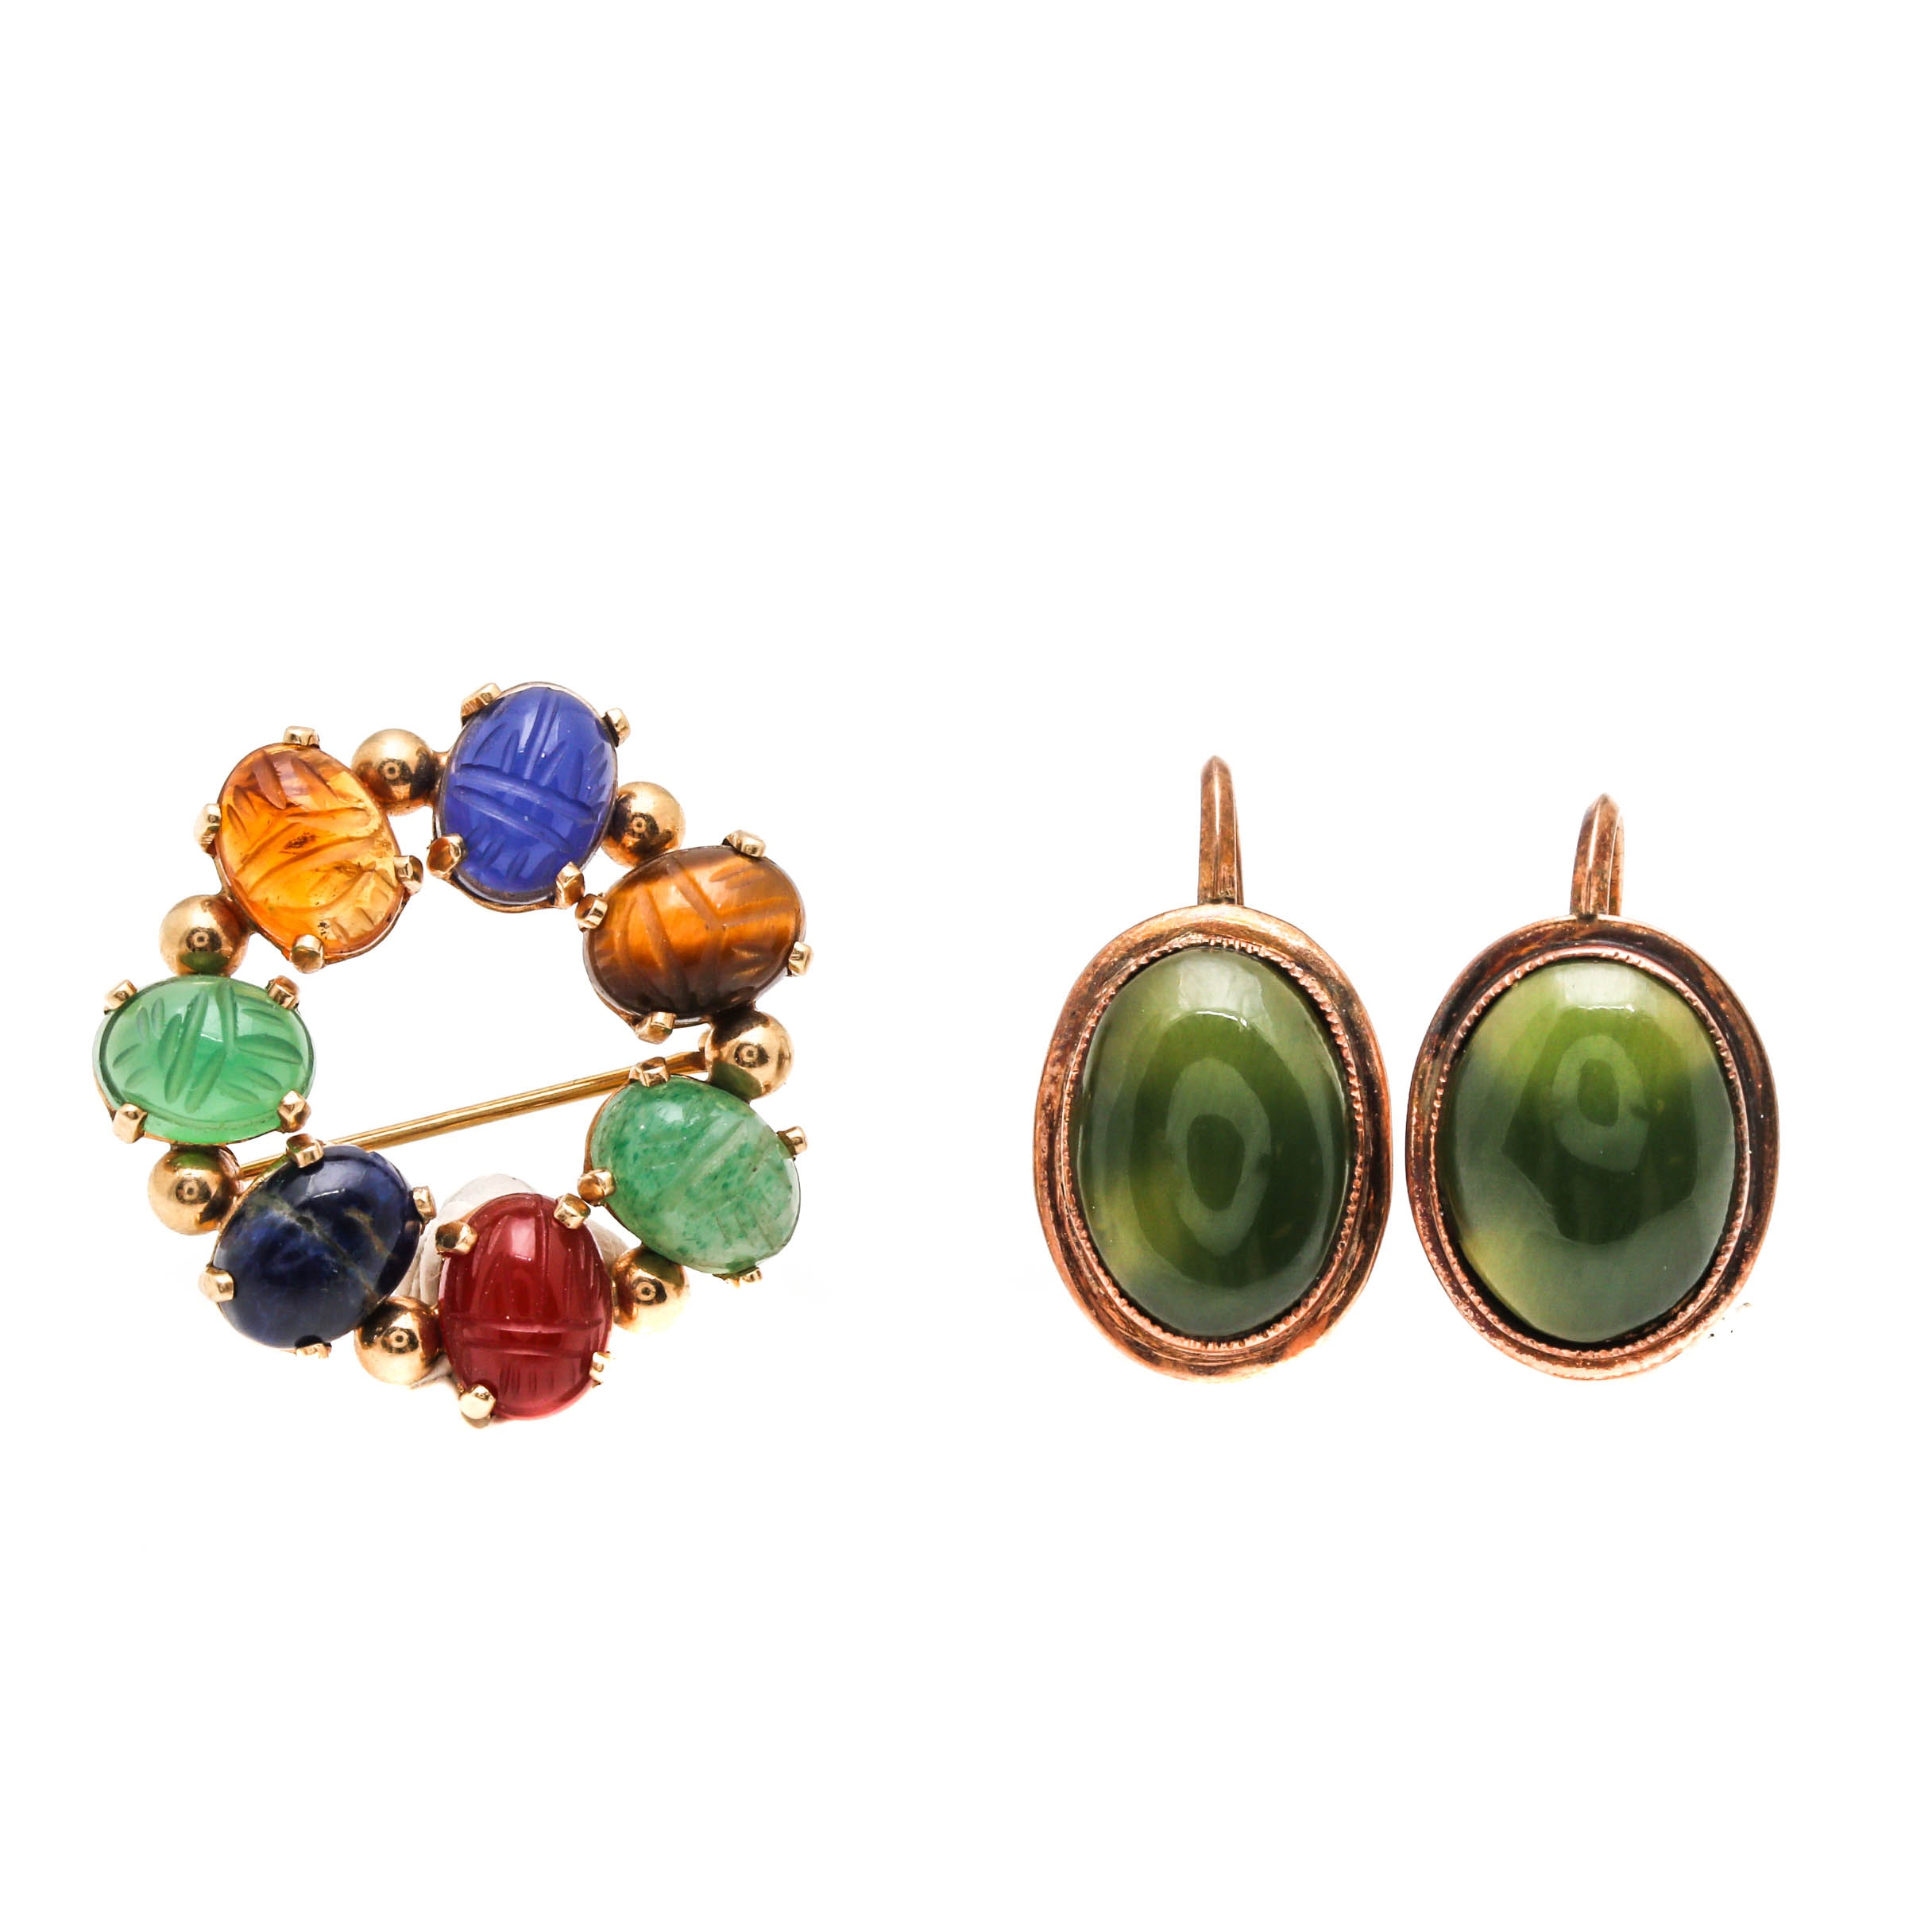 Binder Bros. 14K Yellow Gold Scarab Brooch and 10K Gold Nephrite Earrings